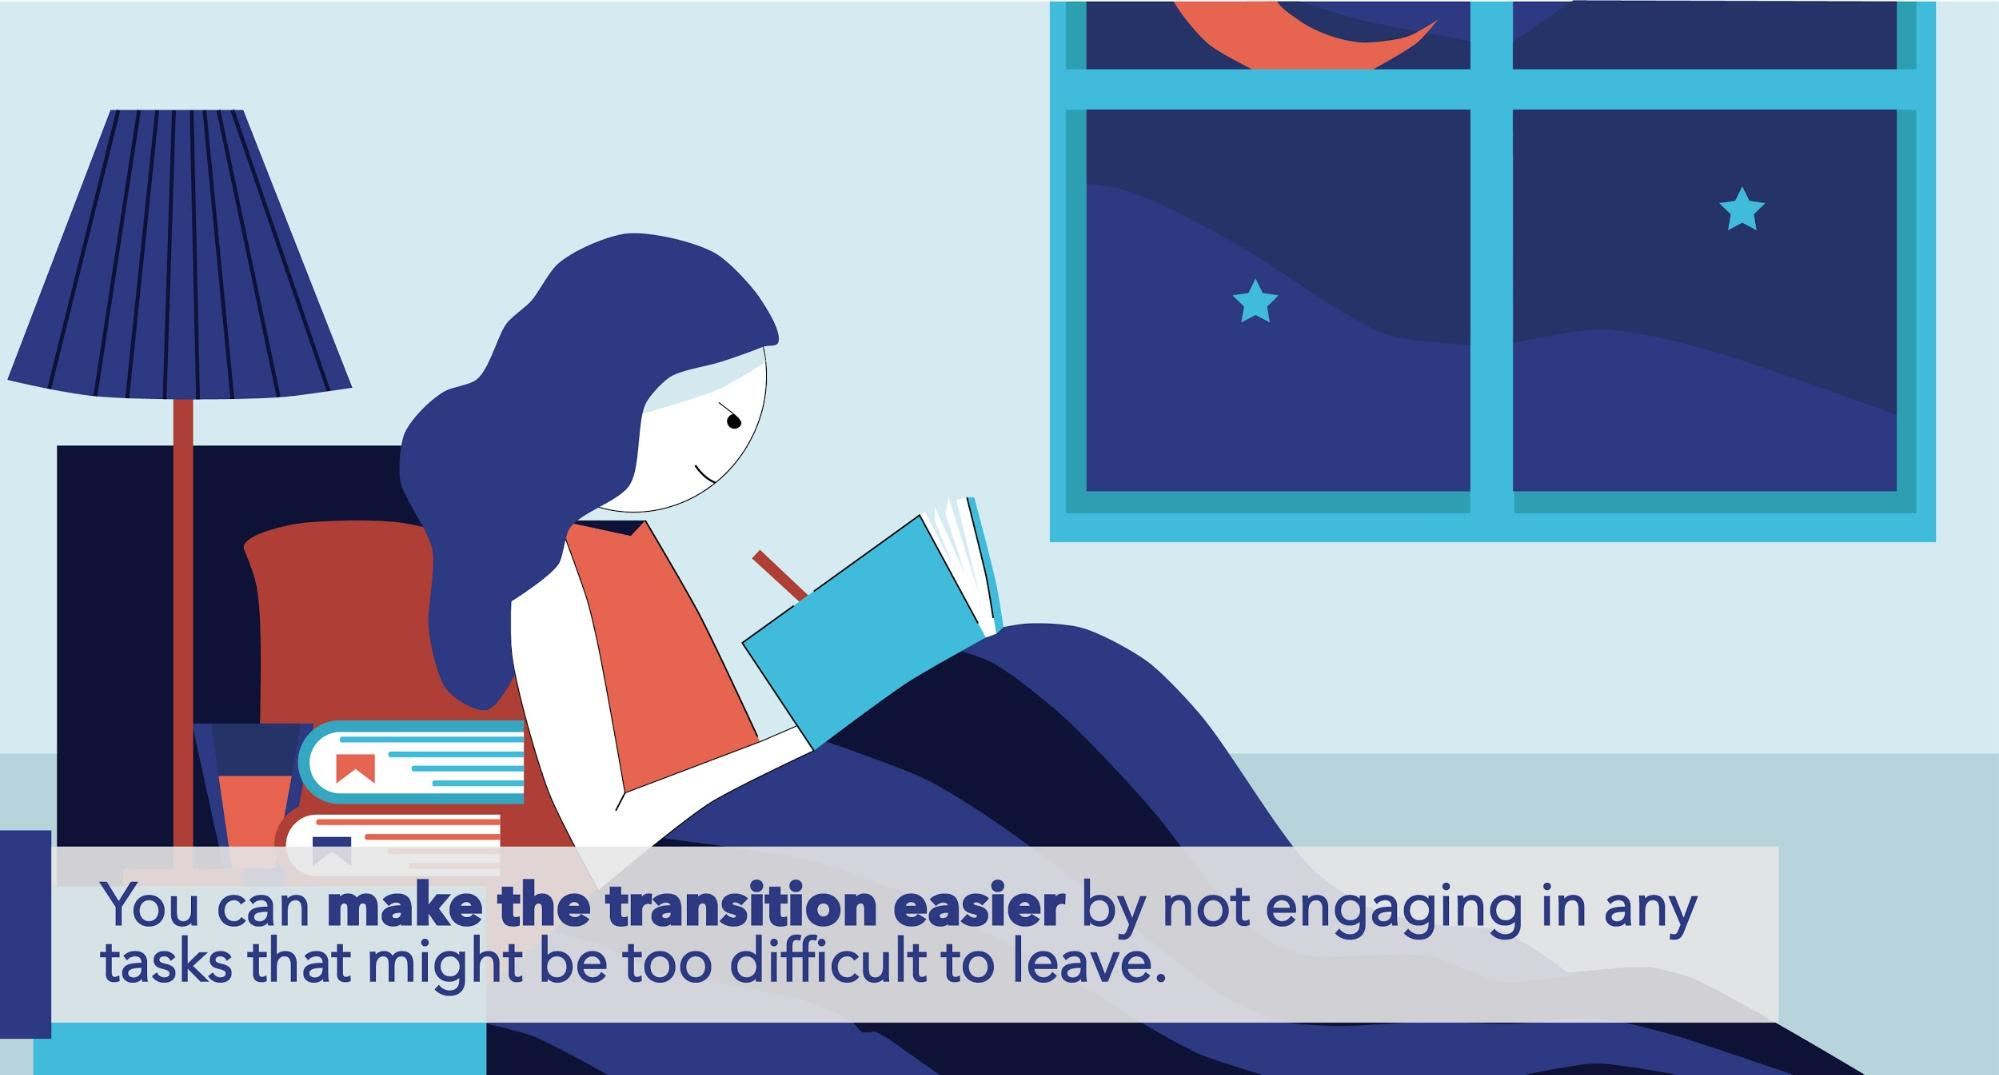 You can make the transition easier by not engaging in any tasks that might be too difficult to leave.